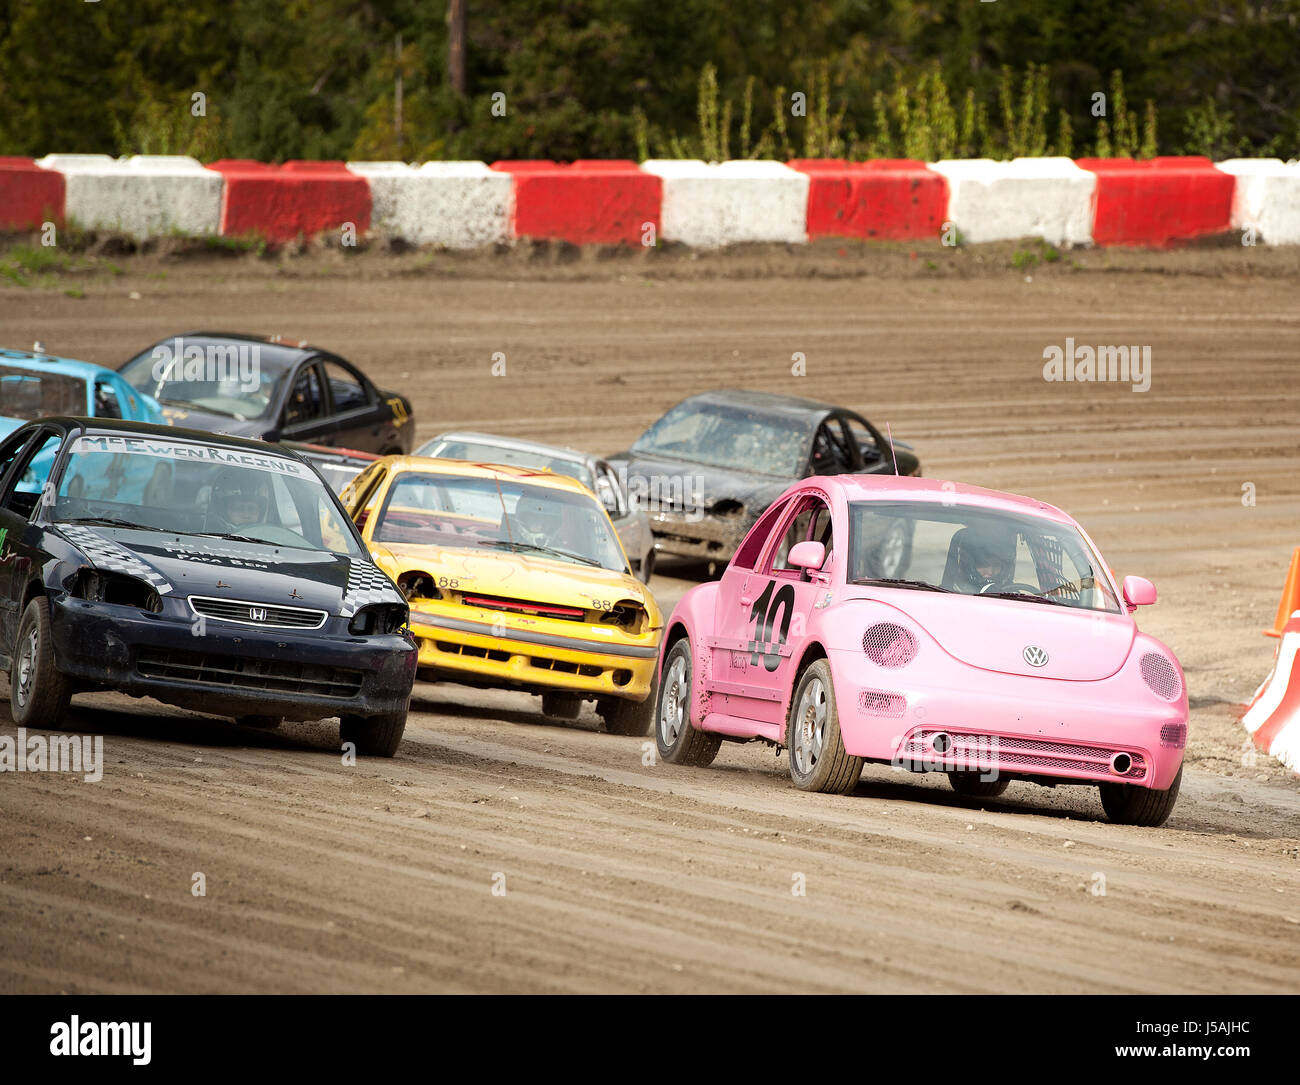 Small town dirt track stock car racing  Home made race cars